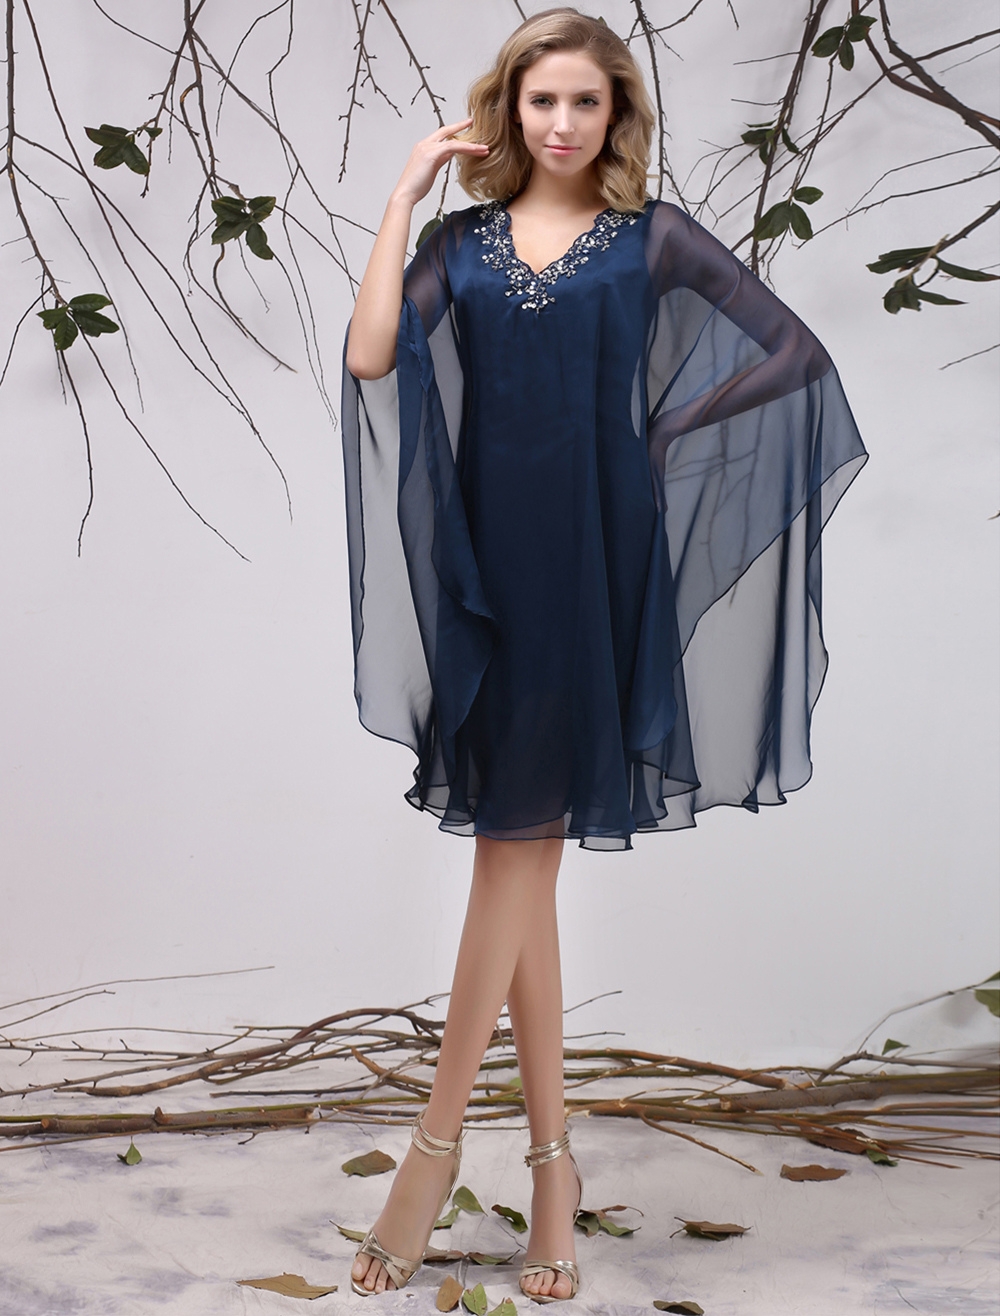 Dark Navy A-Line Chiffon Mother of the Bride Dress Wedding Guest Dress Milanoo